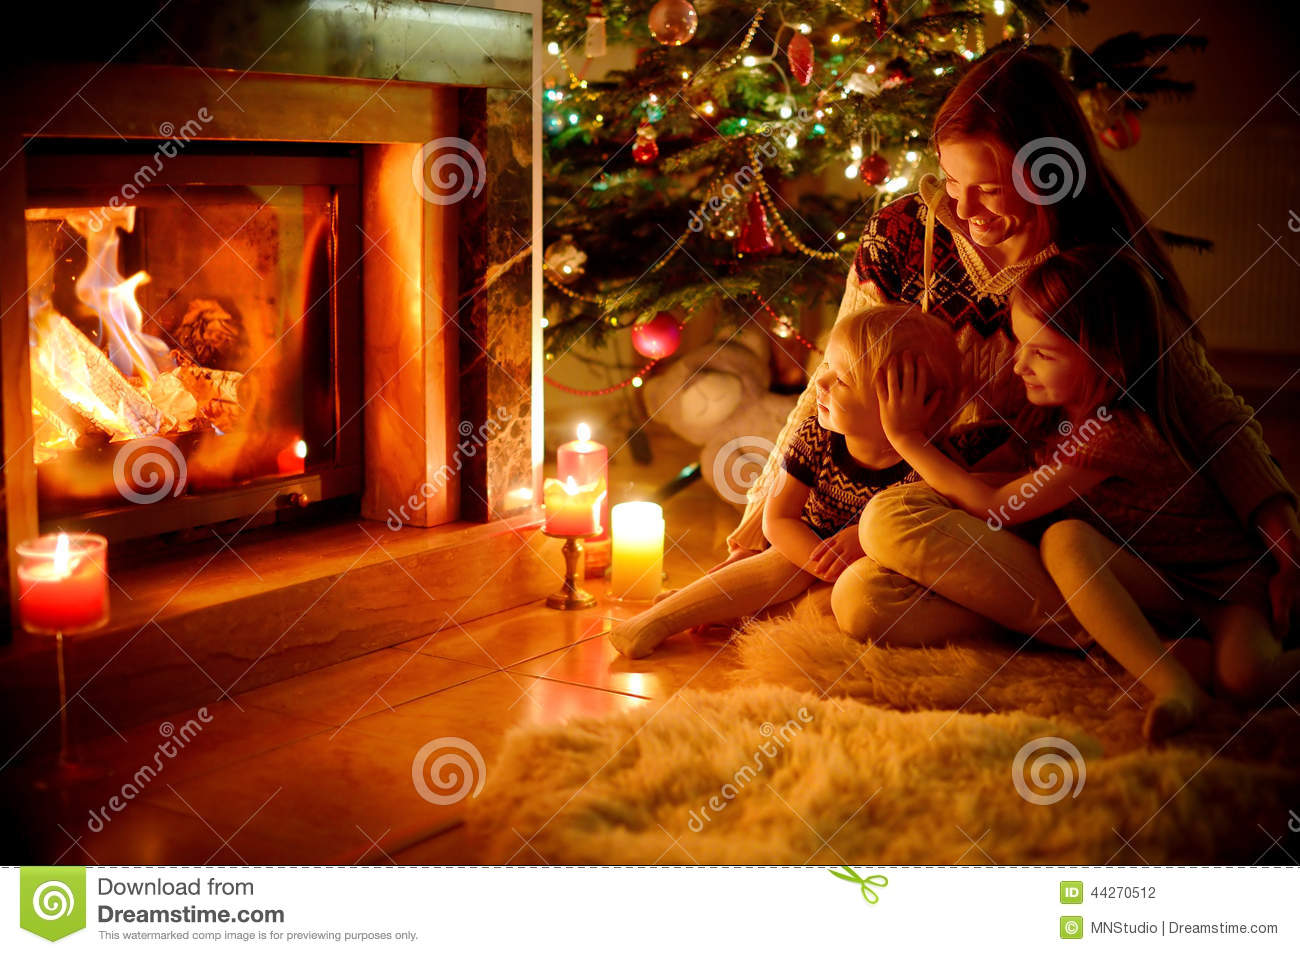 Free Animated Fireplace Wallpaper Happy Family By A Fireplace On Christmas Stock Photo